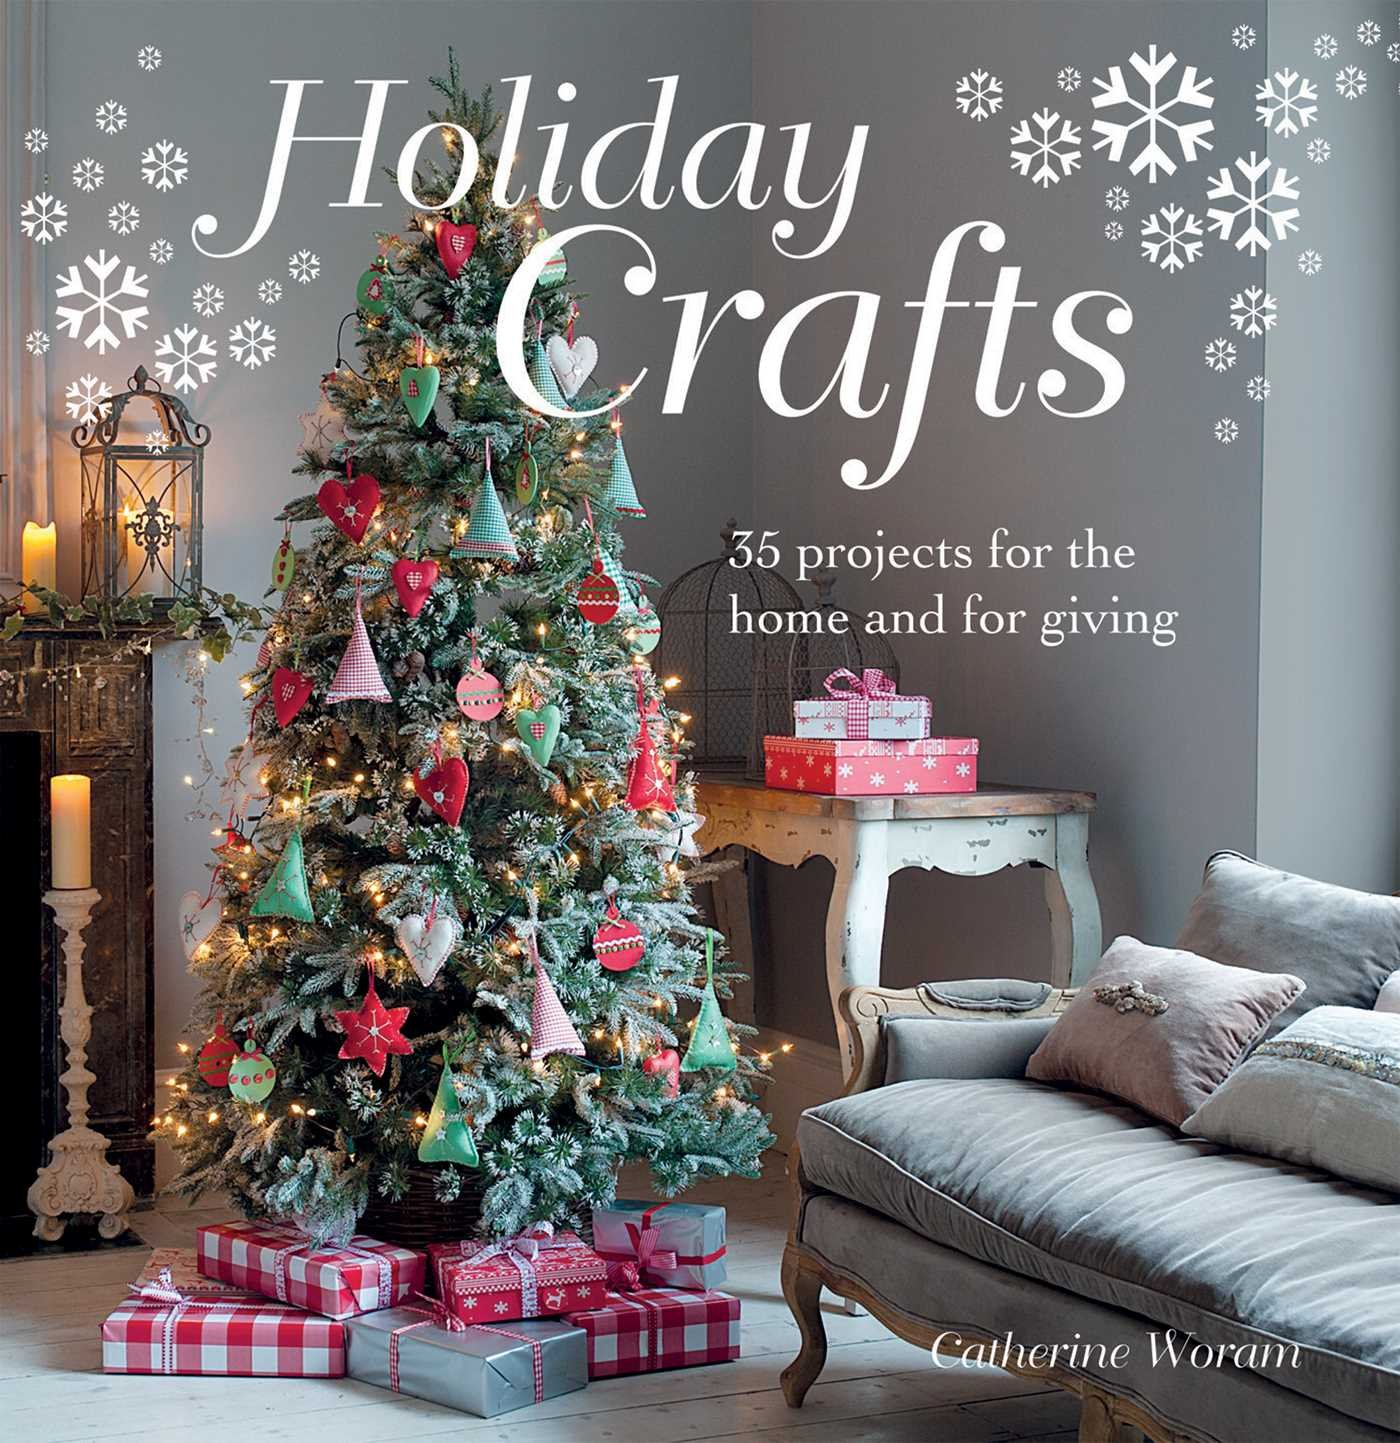 Book cover Holiday crafts - Christmas tree with homemade ornaments